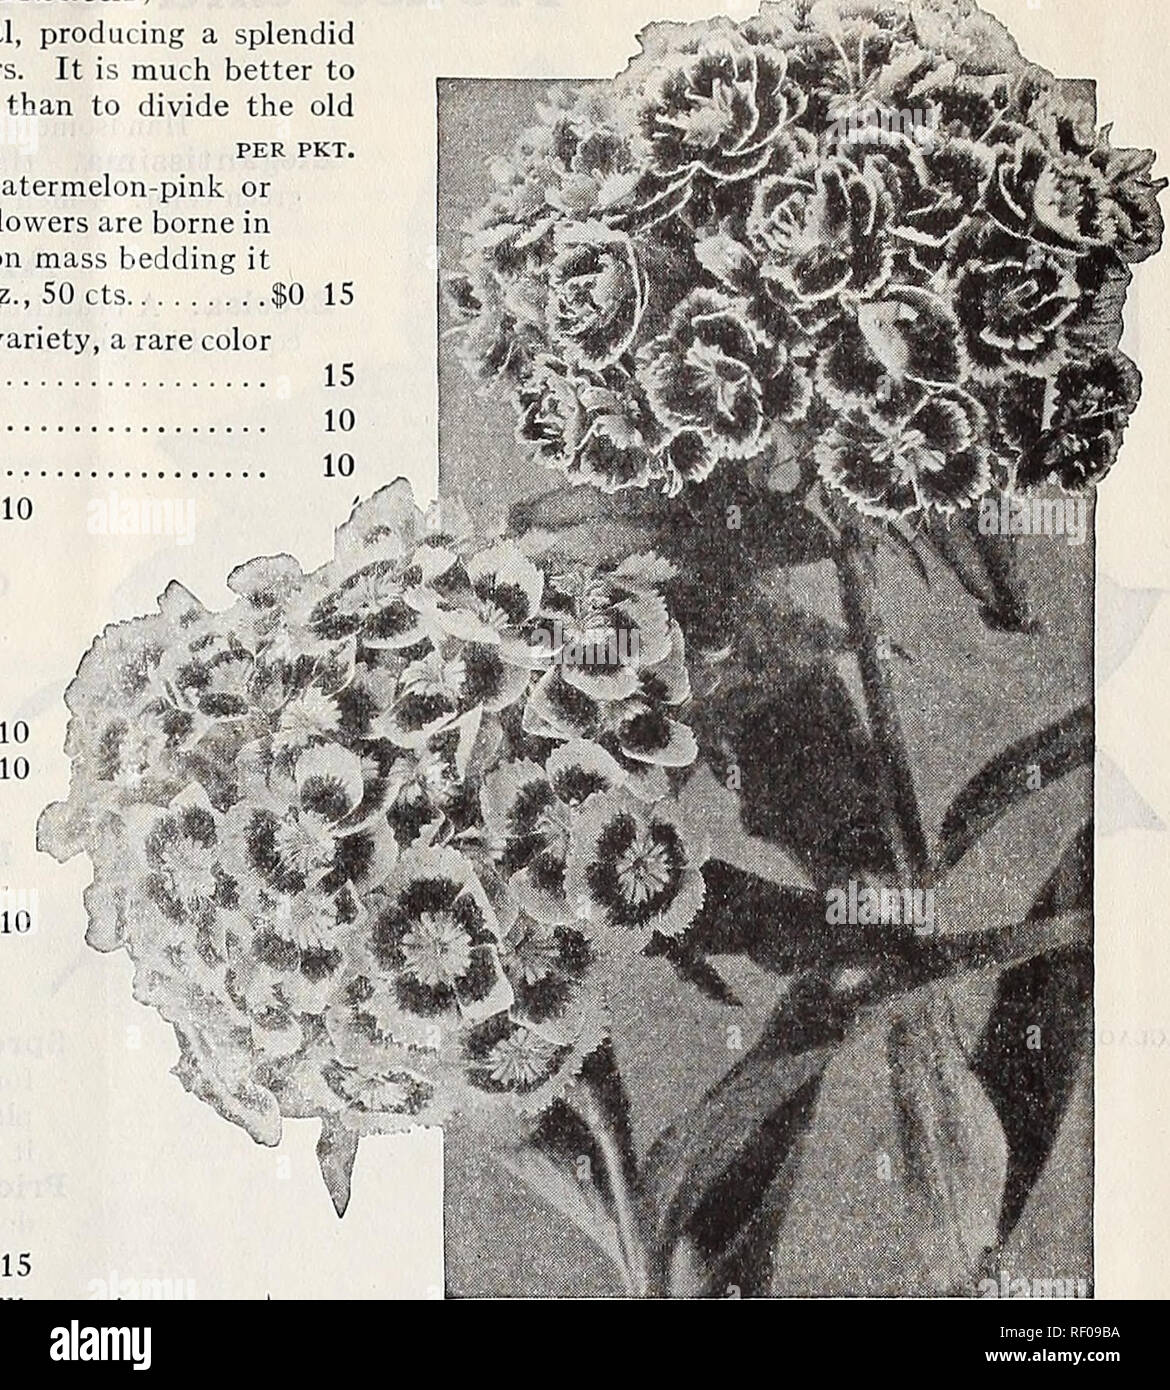 . Dreer's midsummer list 1932. Flowers Seeds Catalogs; Fruit Seeds Catalogs; Vegetables Seeds Catalogs; Nurseries (Horticulture) Catalogs; Gardening Equipment and supplies Catalogs. DREER'S FLOWER SEEDS FOR SUMMER SOWING 23 Sweet William (Dianthus Barbatus) A well-known, attractive, free-flowering hardy perennial, producing a splendid effect in beds and borders with their rich and varied flowers. It is much better to raise new vigorous young plants from seed every season than to divide the old plants; 18 inches. PER PKt. 4282 Newport Pink. In color it is what florists call watermelon-pink or s - Stock Image